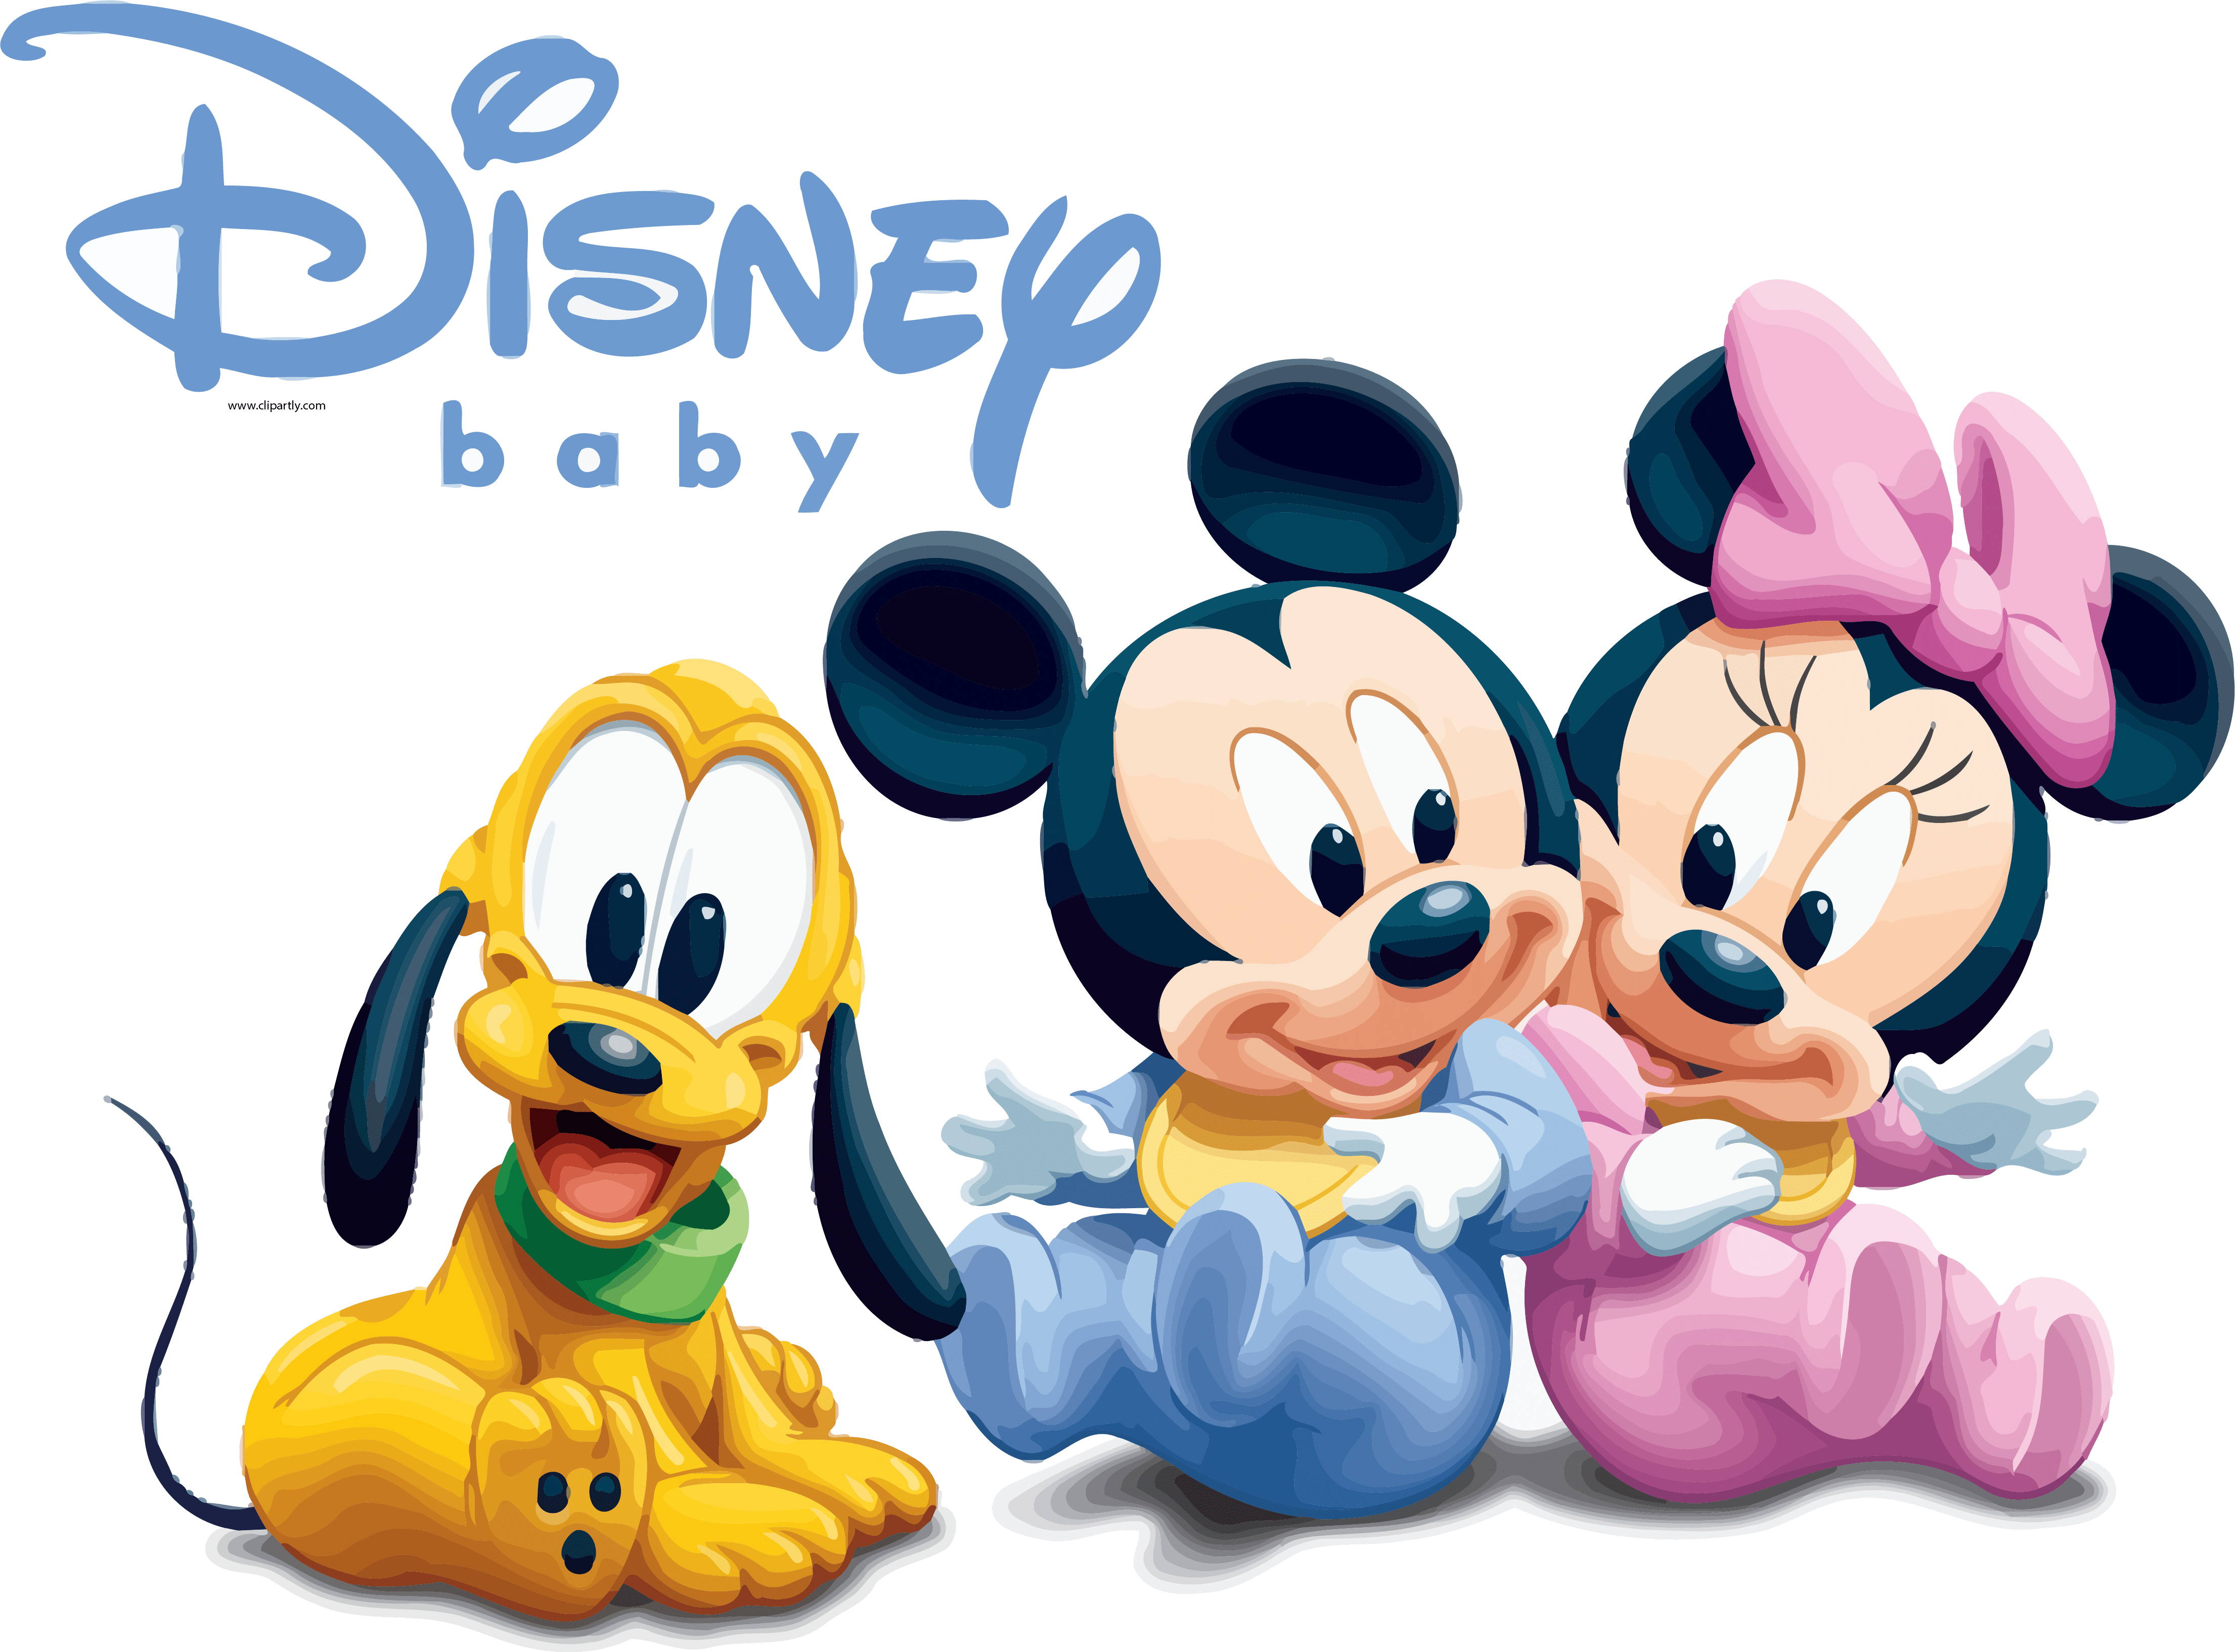 Unique Disney Christmas Clipart Collection Digital Disney Cartoon Images Free Download Png Download Full Size Clipart 3787749 Pinclipart